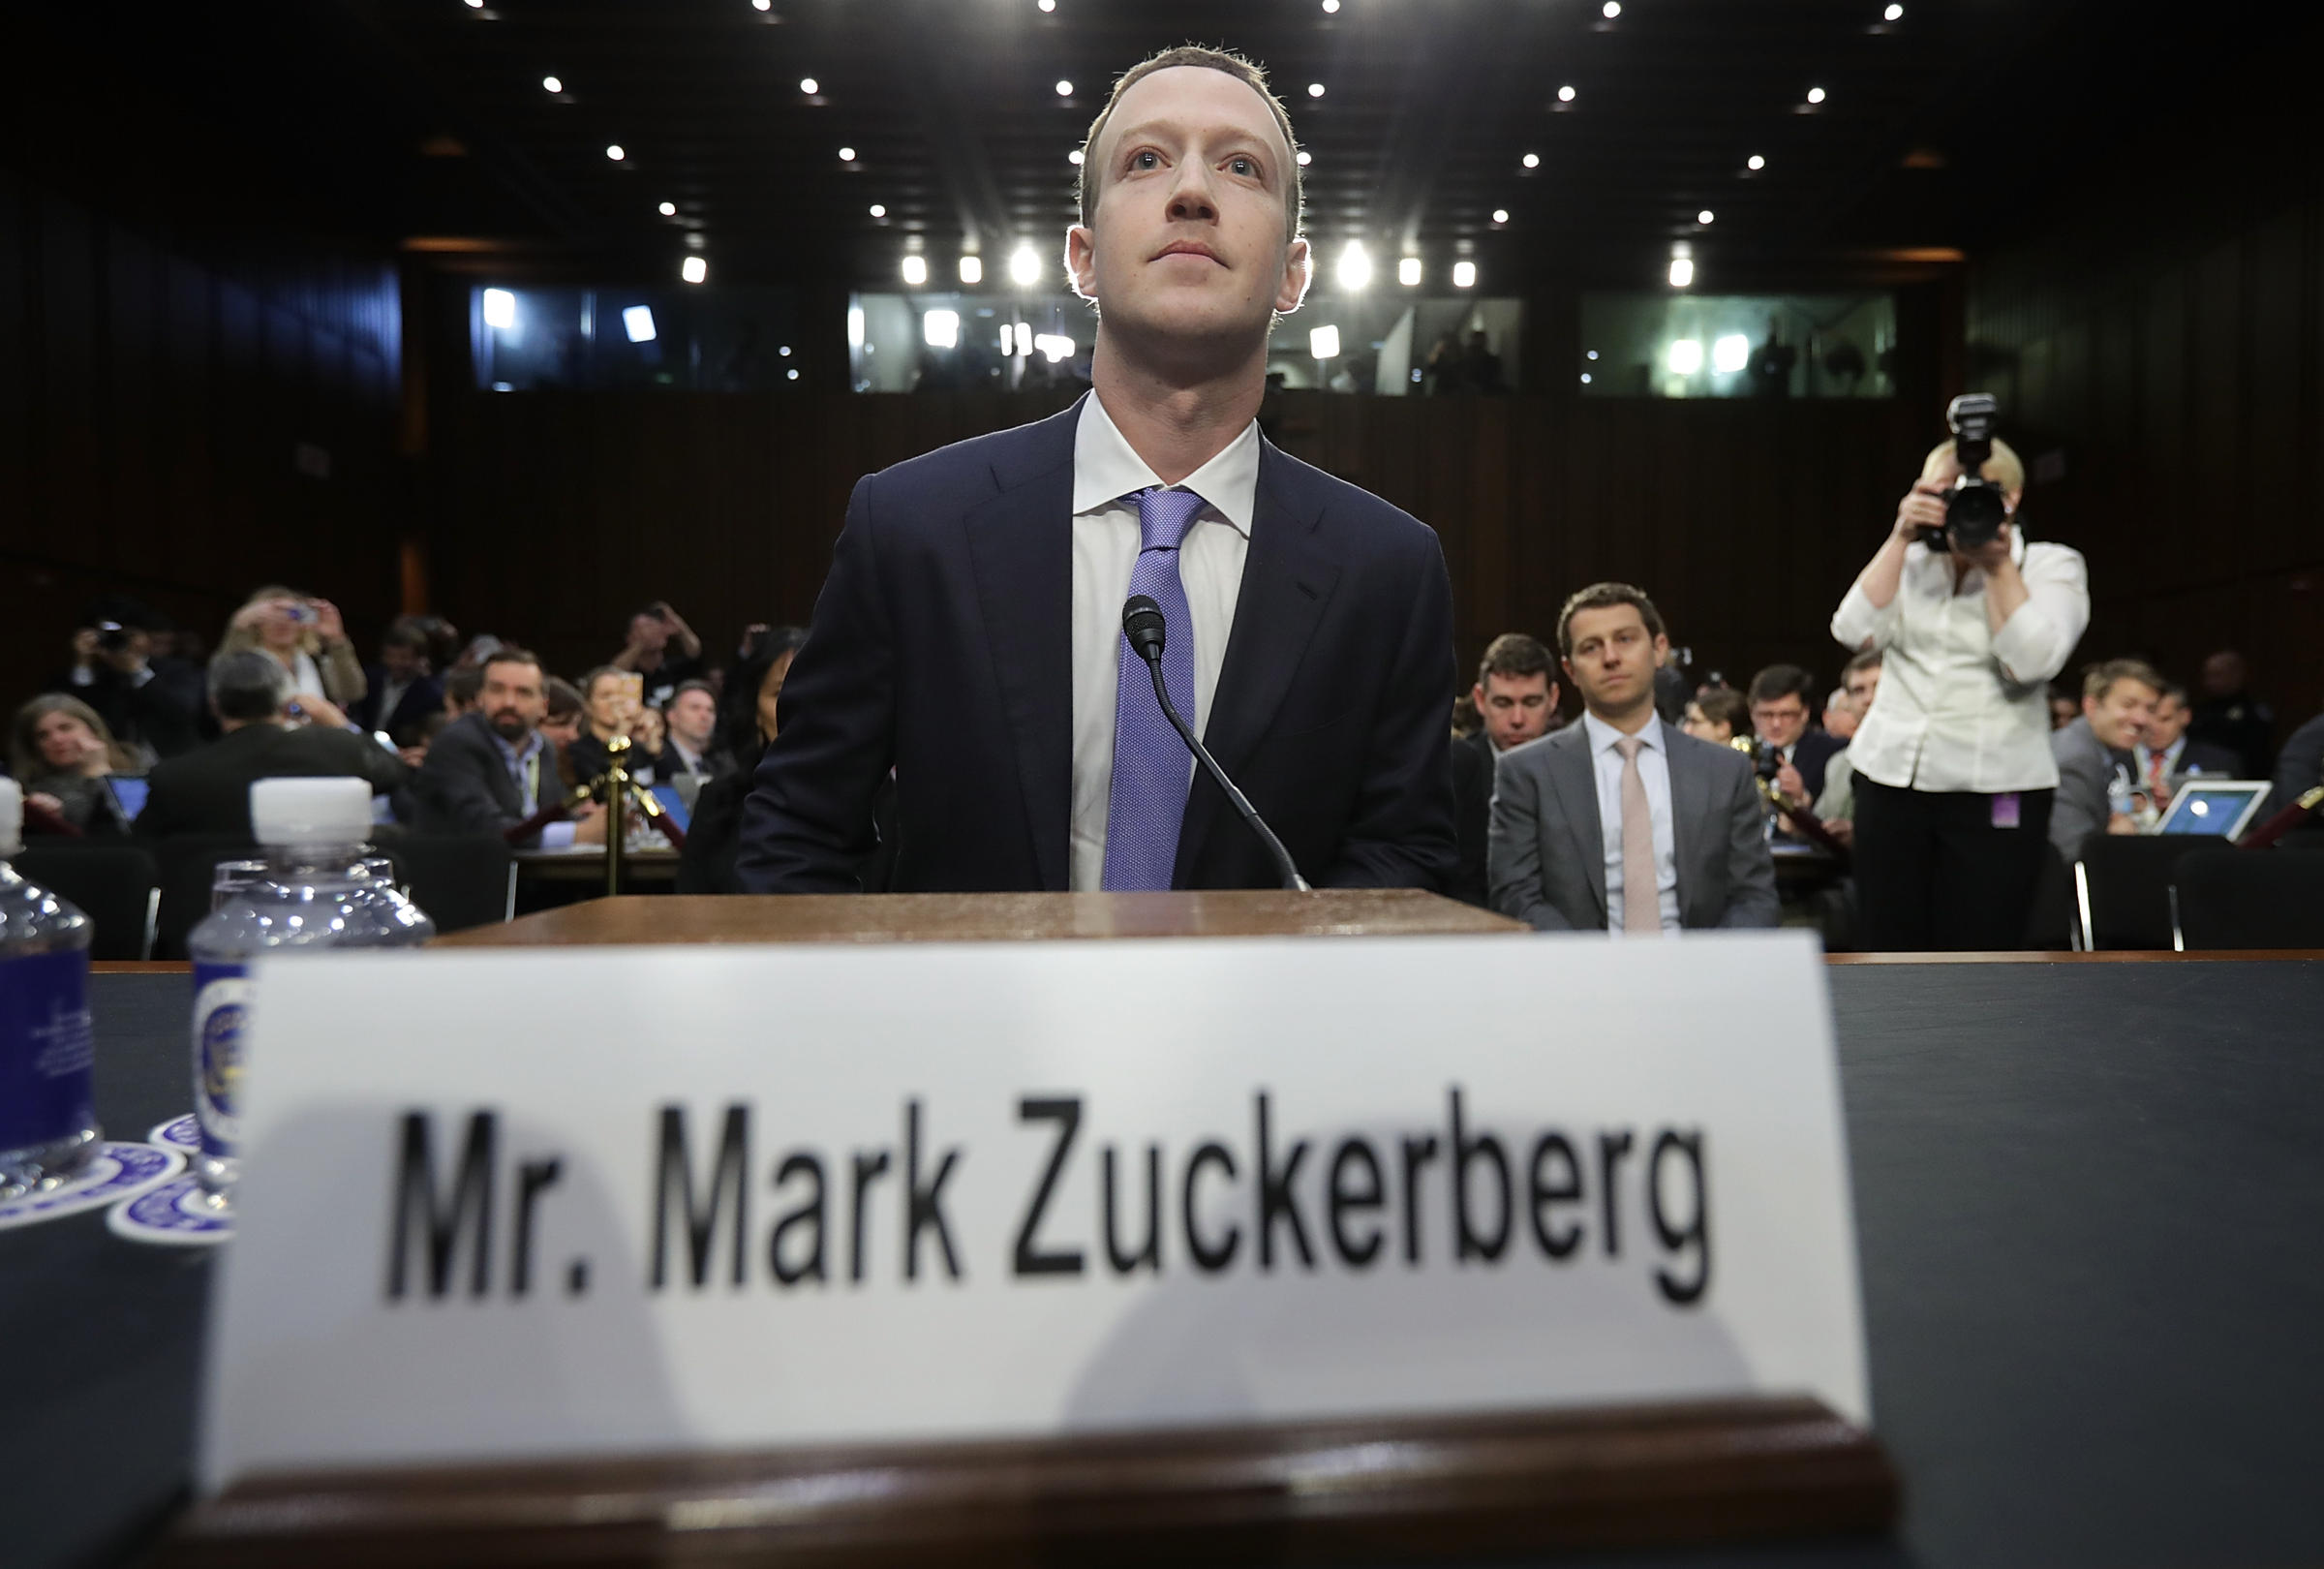 Mark Zuckerberg says Facebook could have done more to prevent misuse